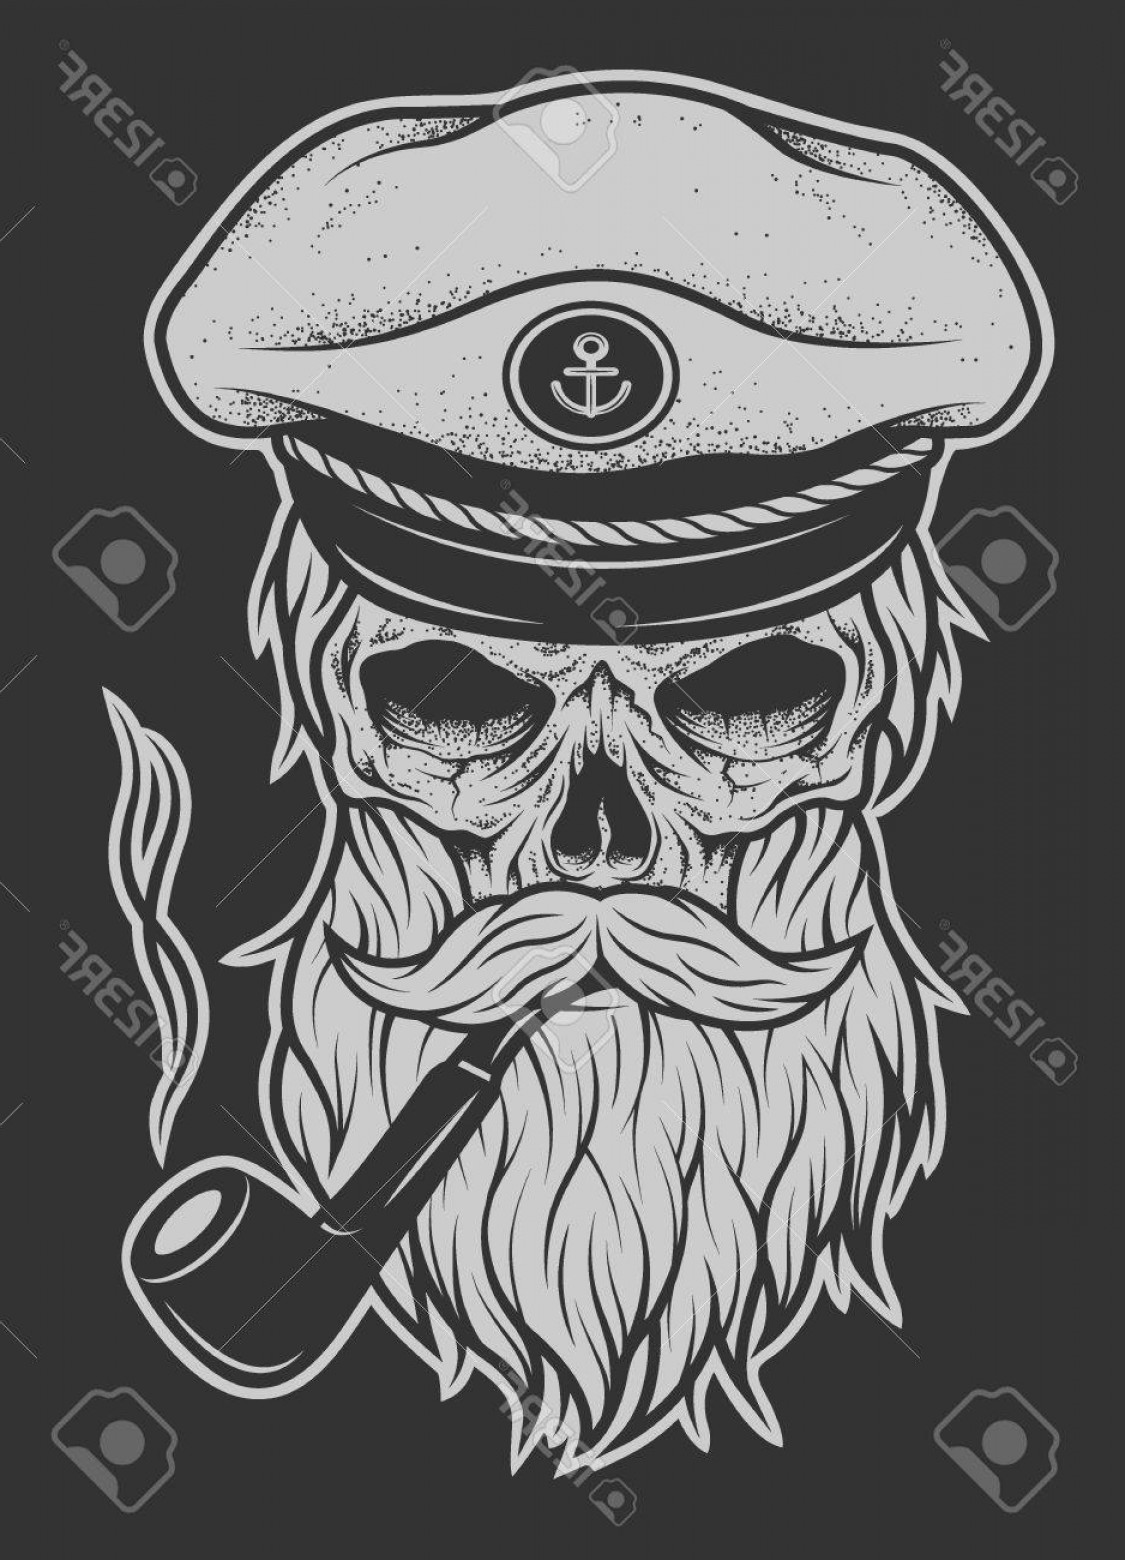 Fear The Beard Vector: Photostock Vector Captain Skull In A Hat With A Beard And A Tobacco Pipe Vector Illustration